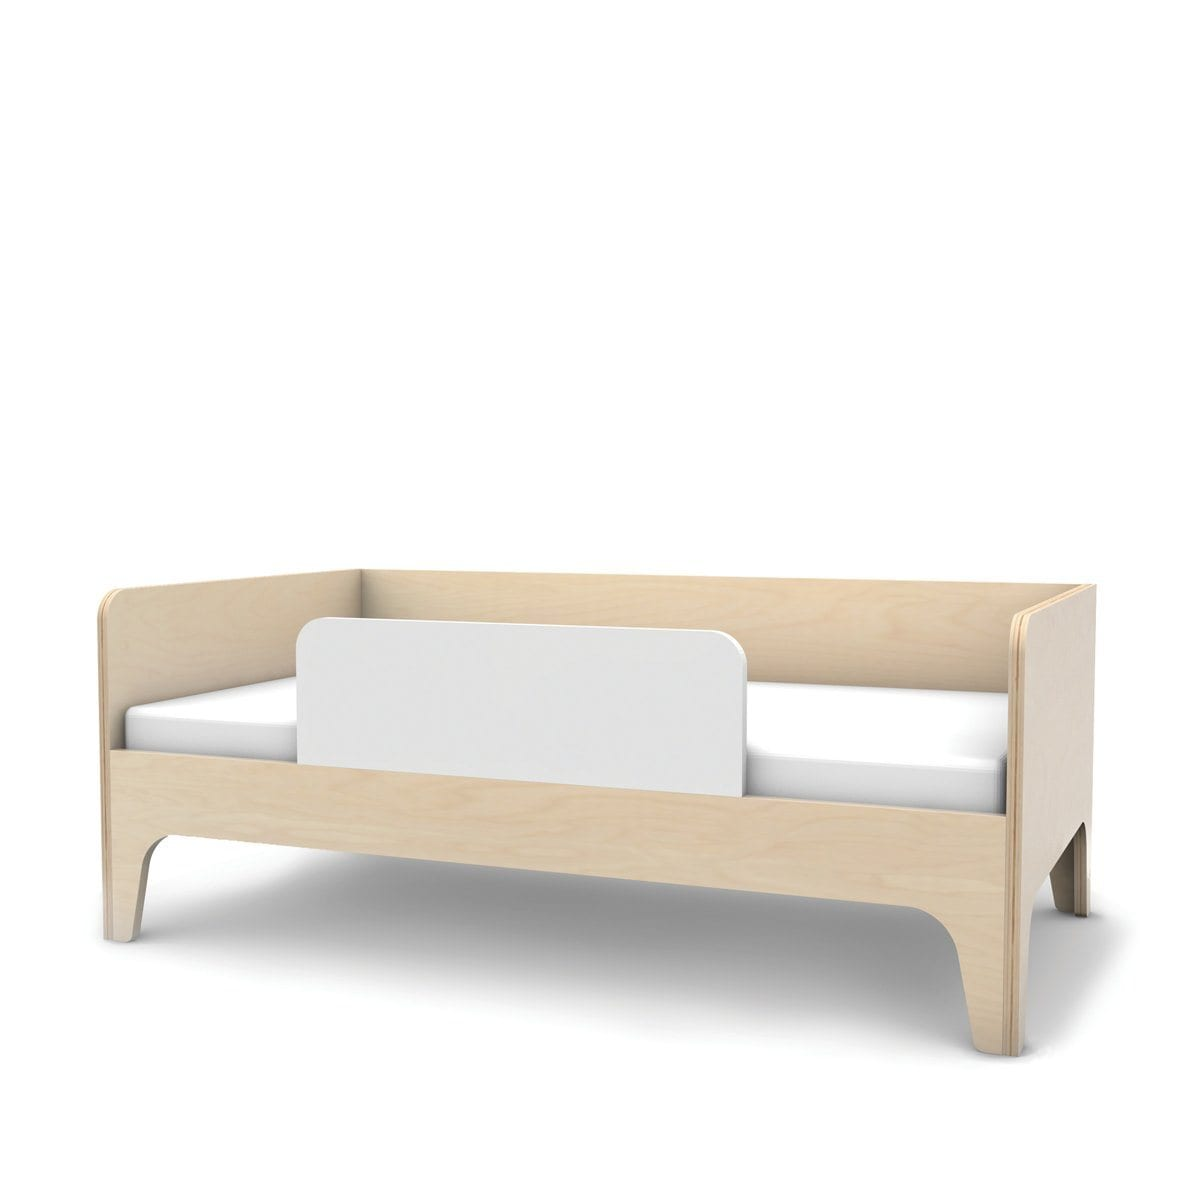 Oeuf Perch Toddler Bed - huggle